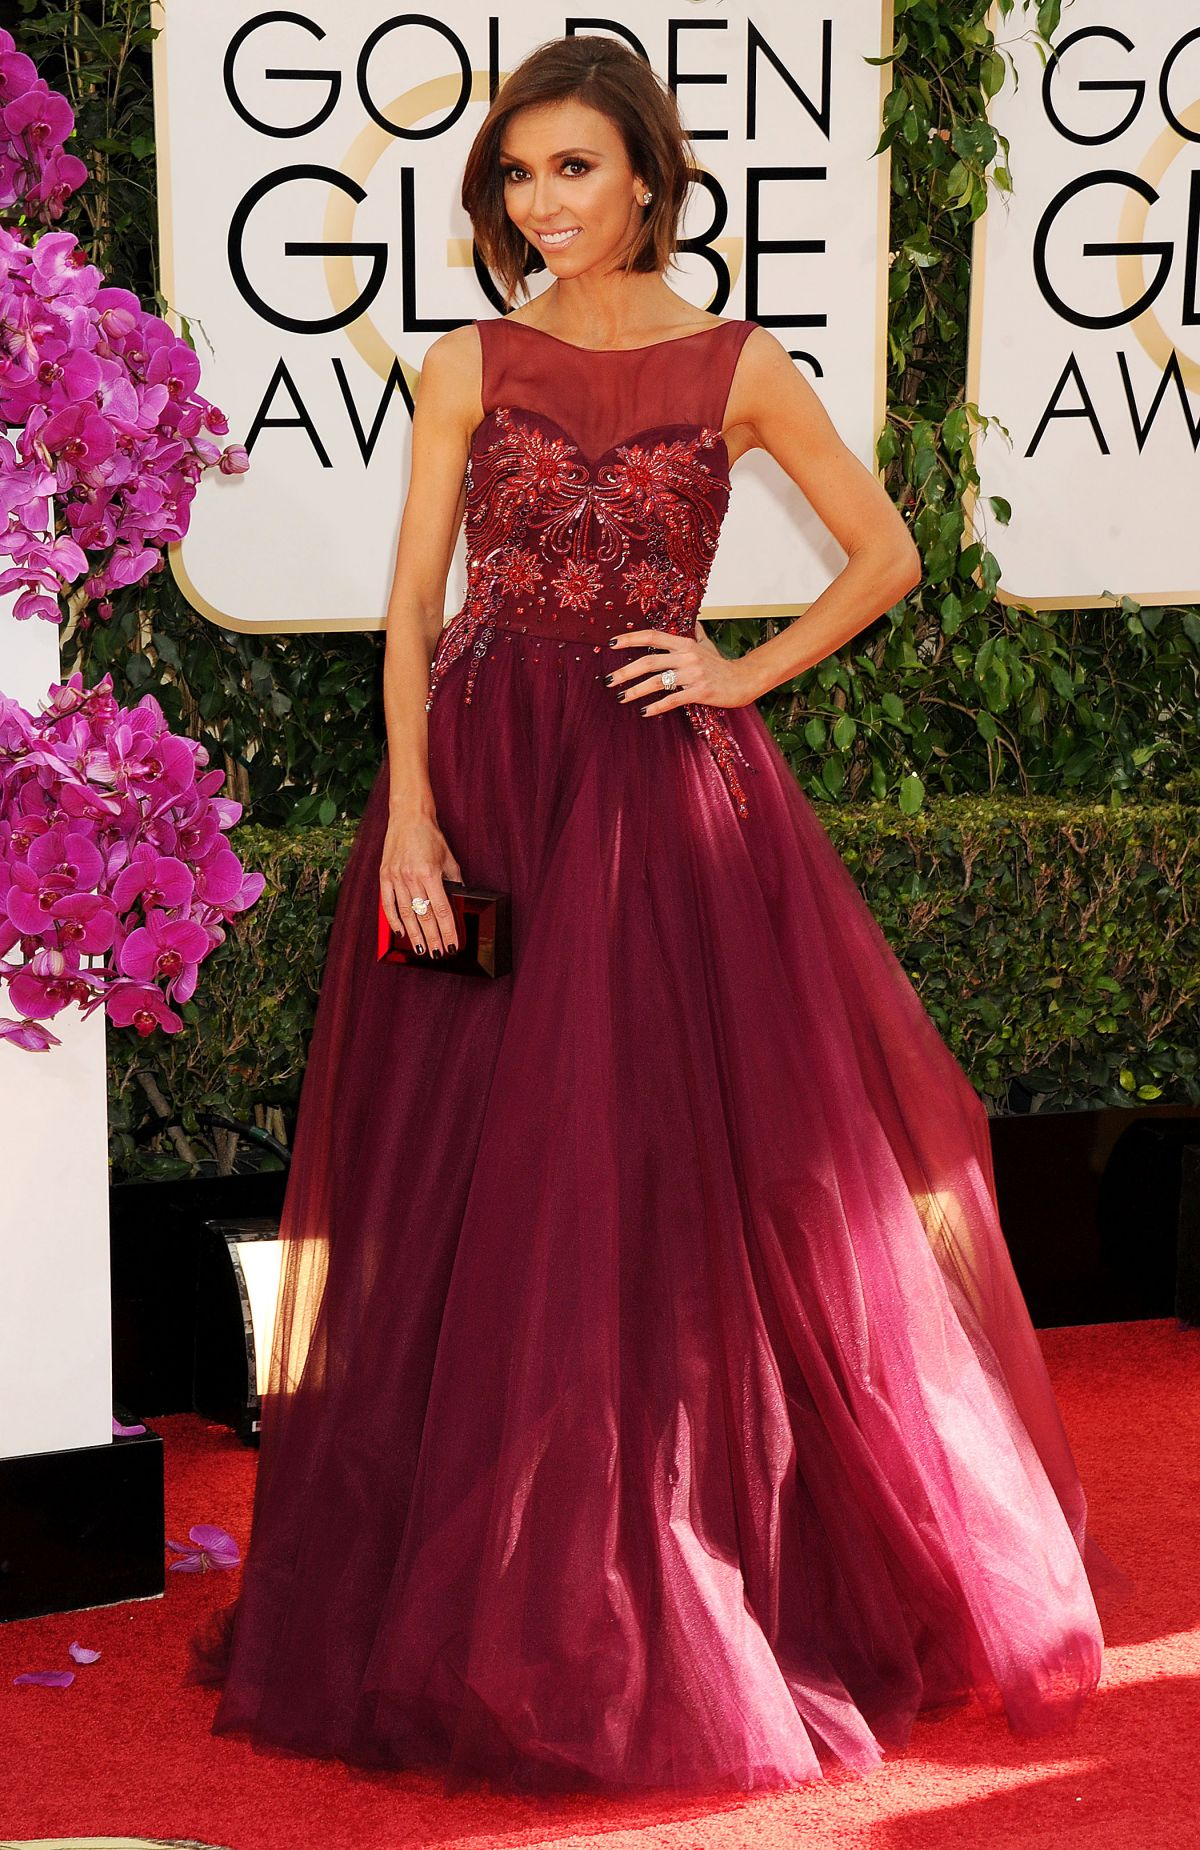 giuliana-rancic-at-71st-annual-golden-globe-awards_1.jpg